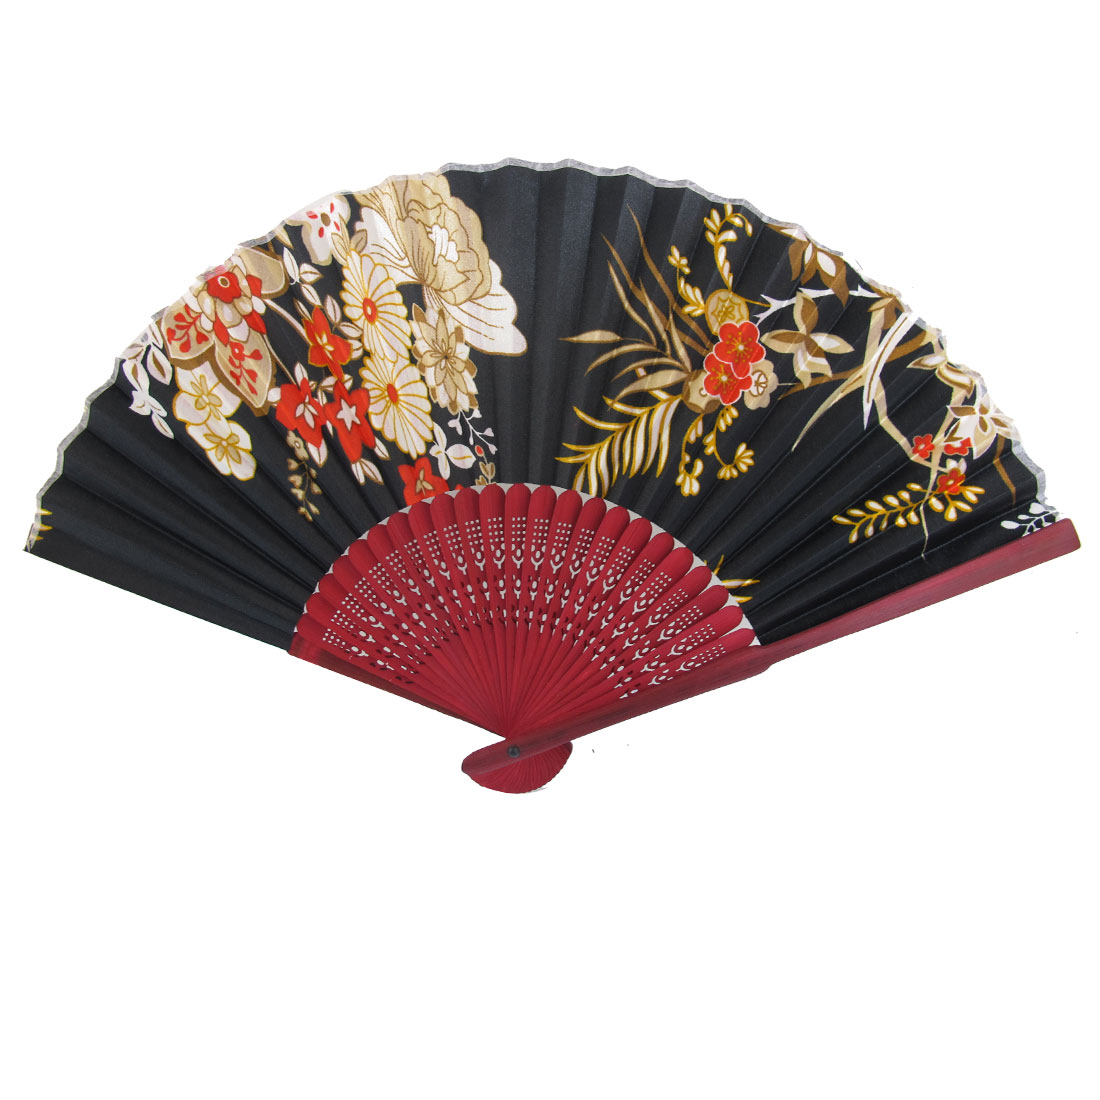 Burgundy Wood Hollow Out Design Ribs Flower Pattern Fabric Foldable Hand Fan